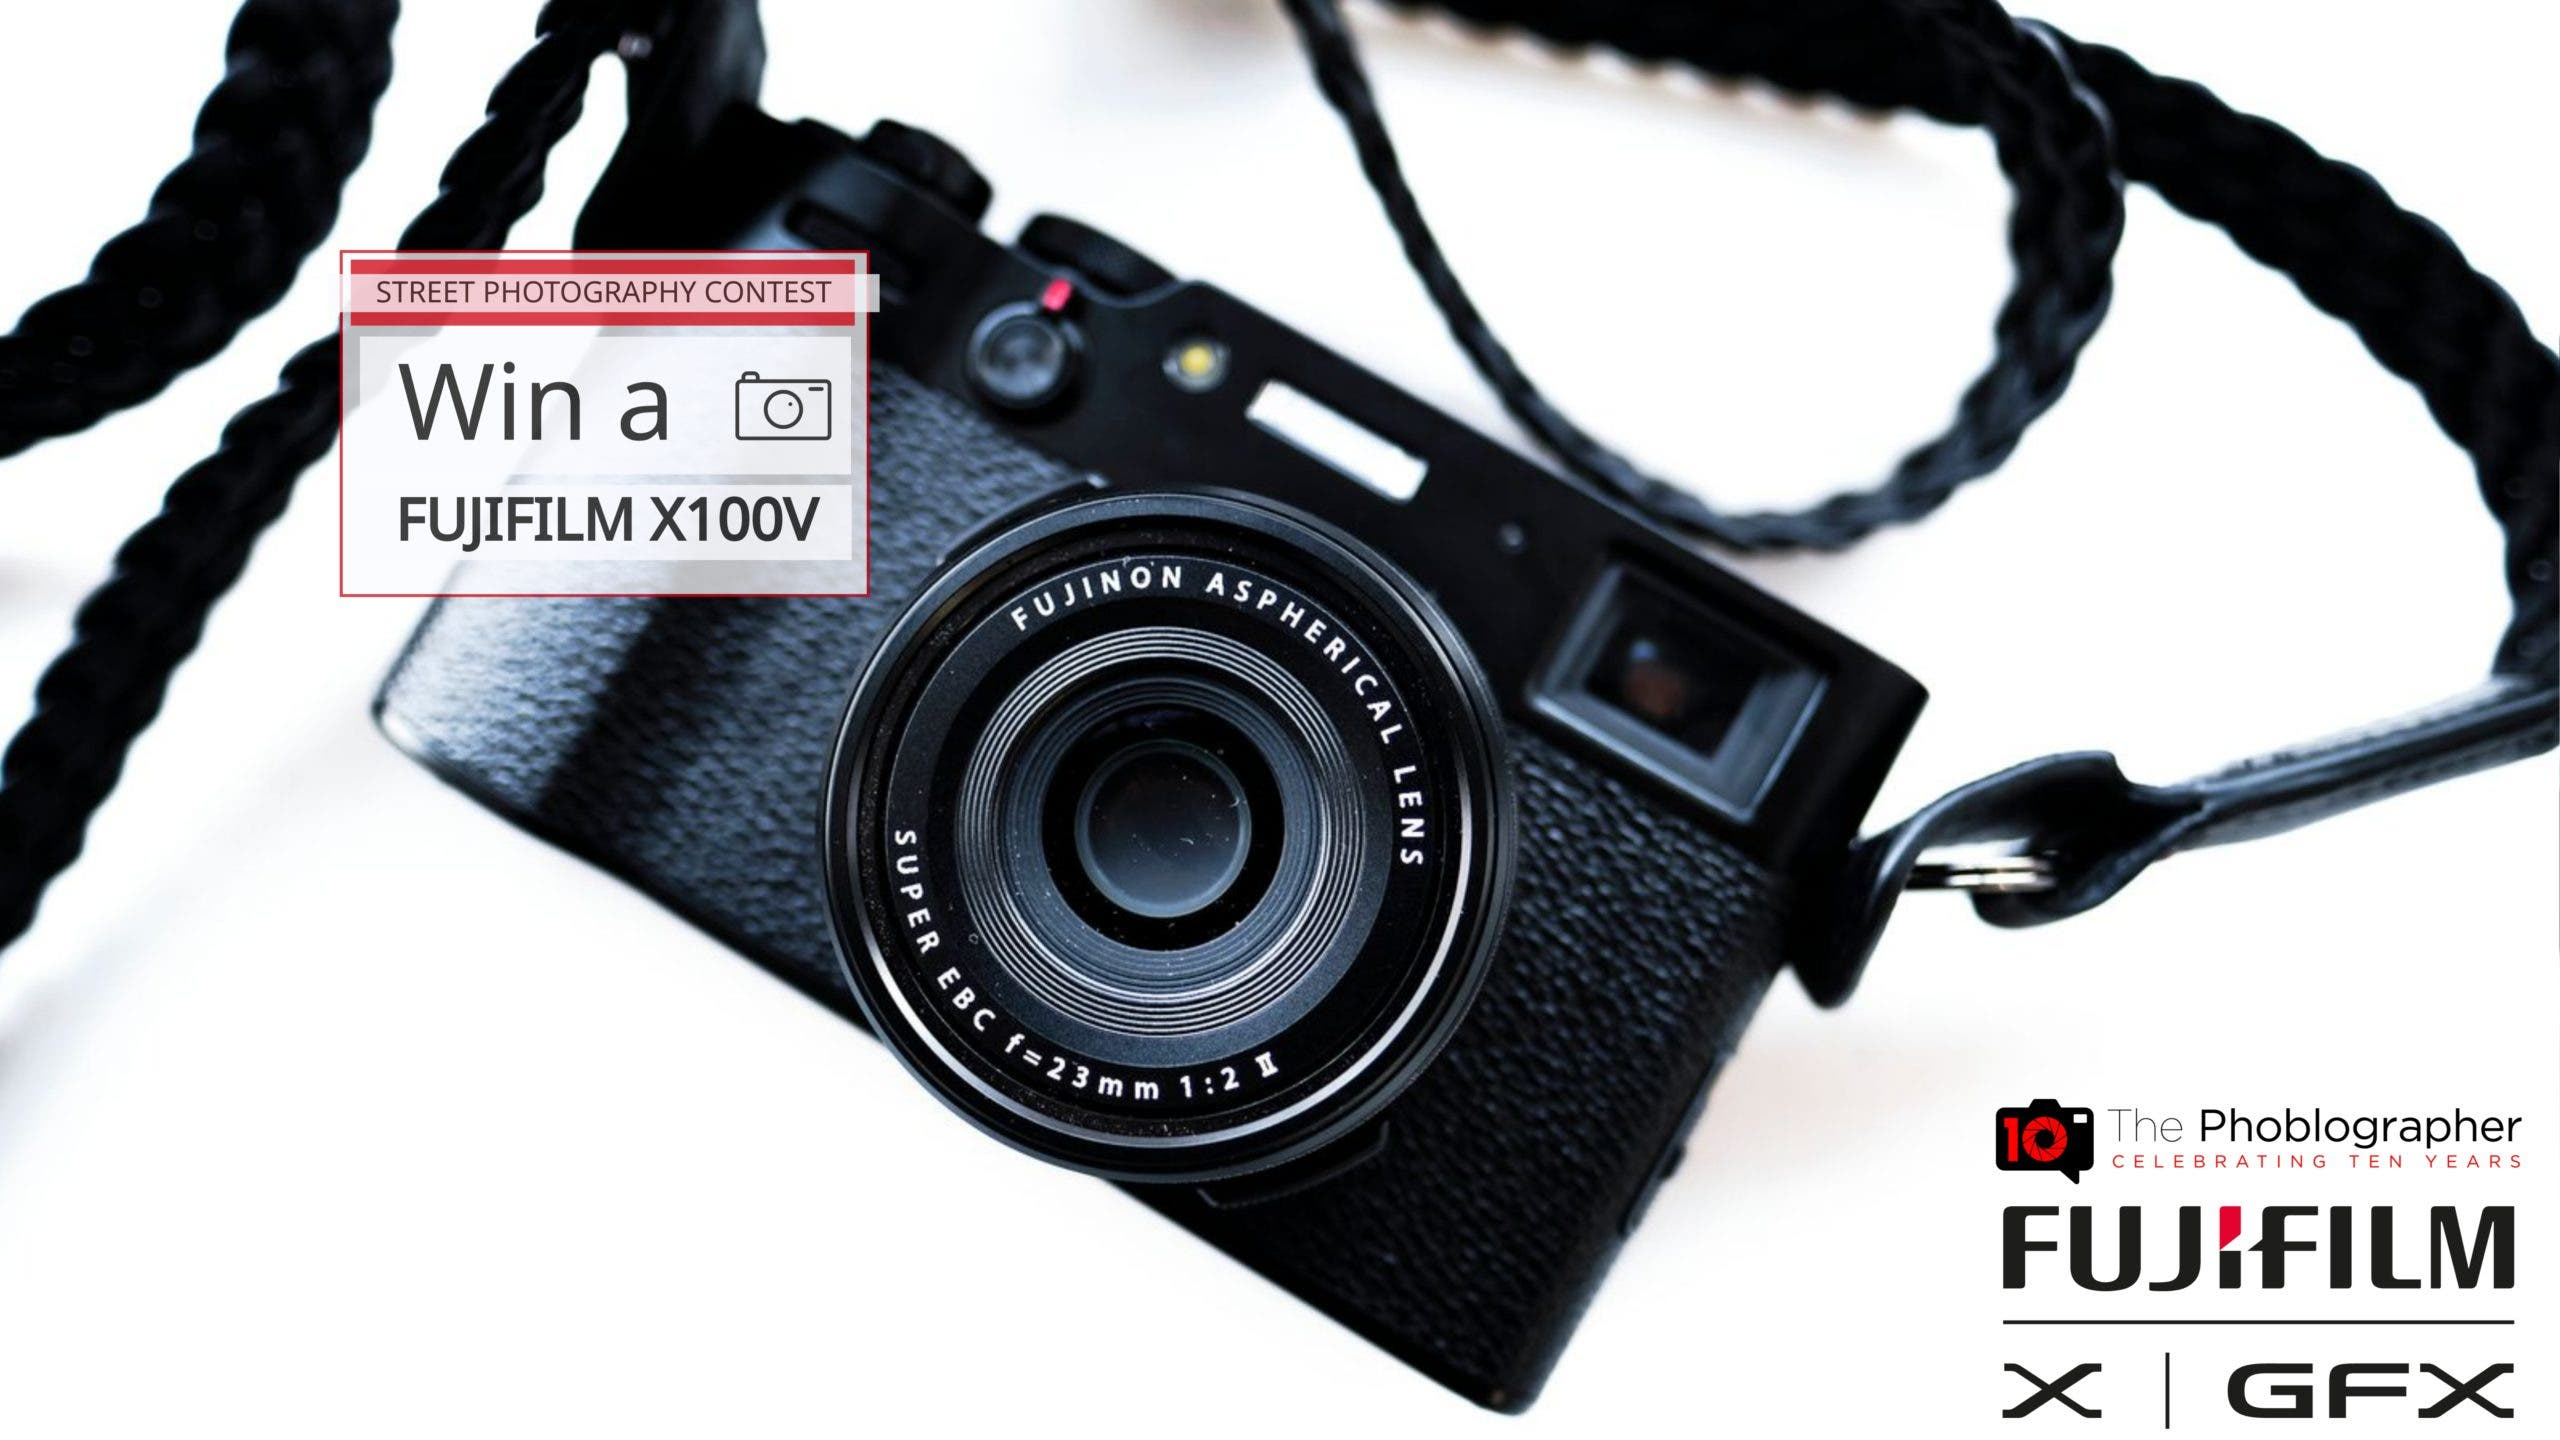 Let's Go! You've Got a Few Days Left to Win a Fujifilm X100V in Our Photo Contest!